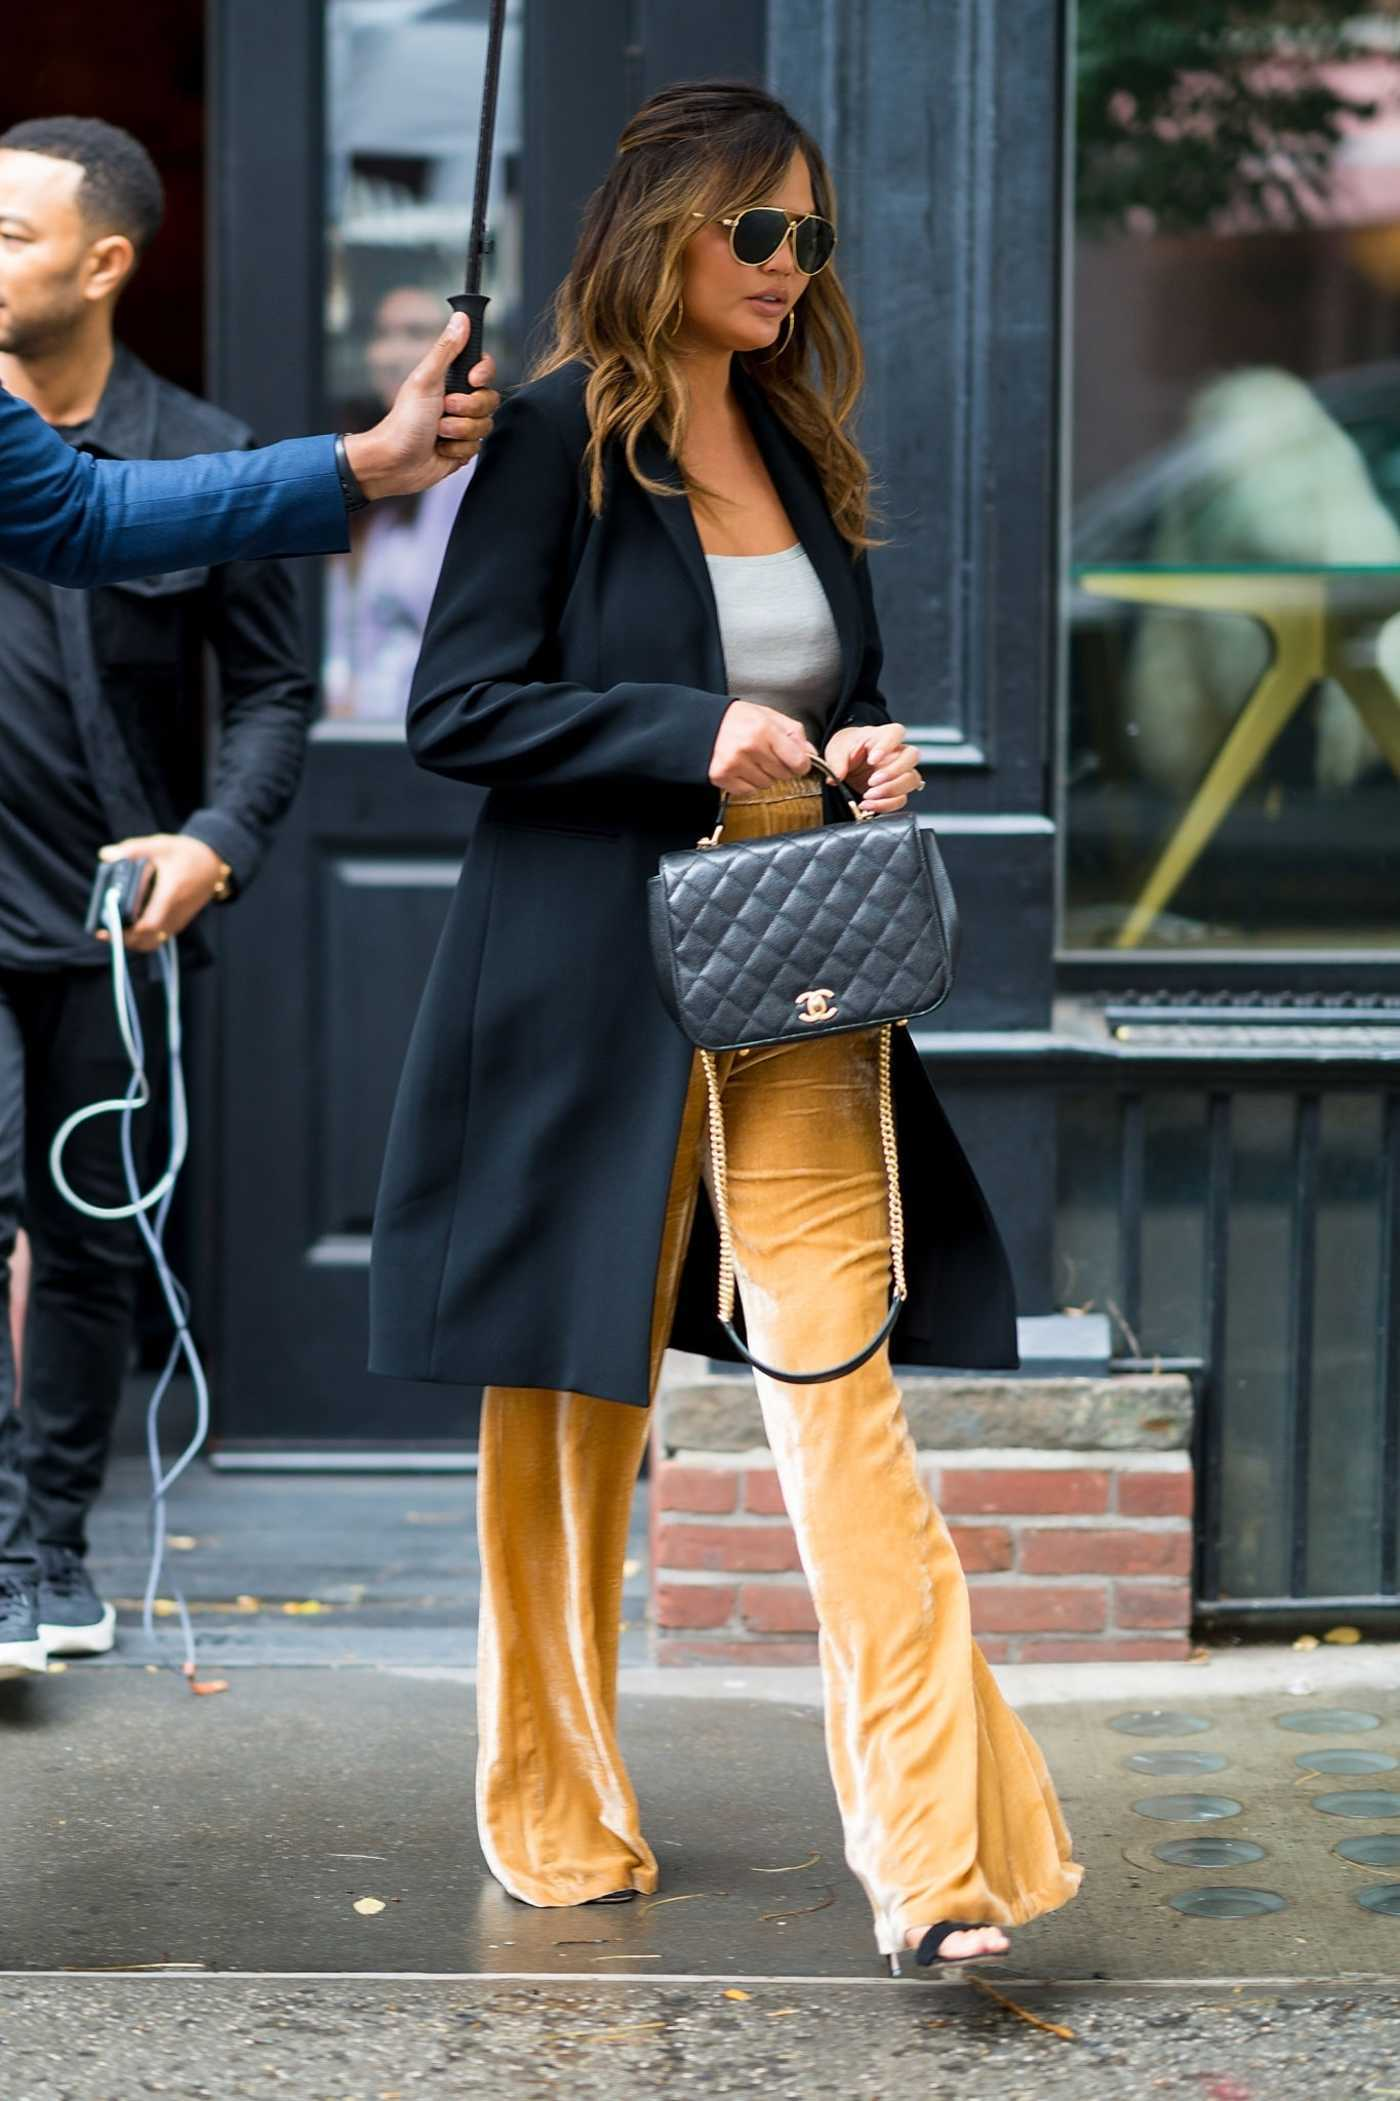 Chrissy Teigen in a Yellow Pants Was Seen in Little Italy in New York City 10/12/2018